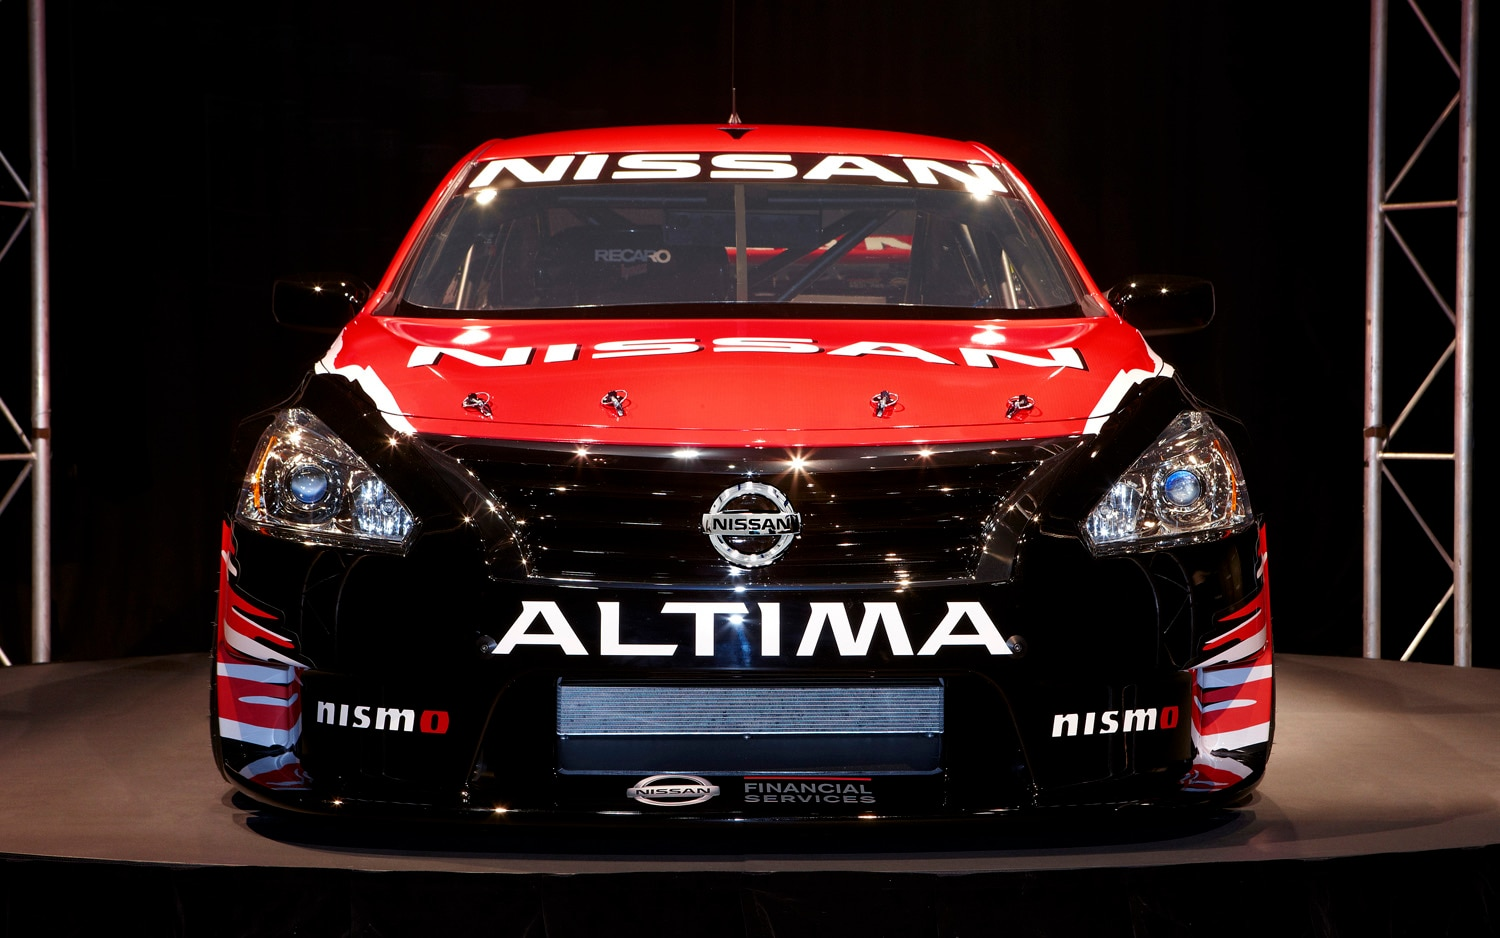 2013 Nissan Altima V 8 Supercar Front End On1